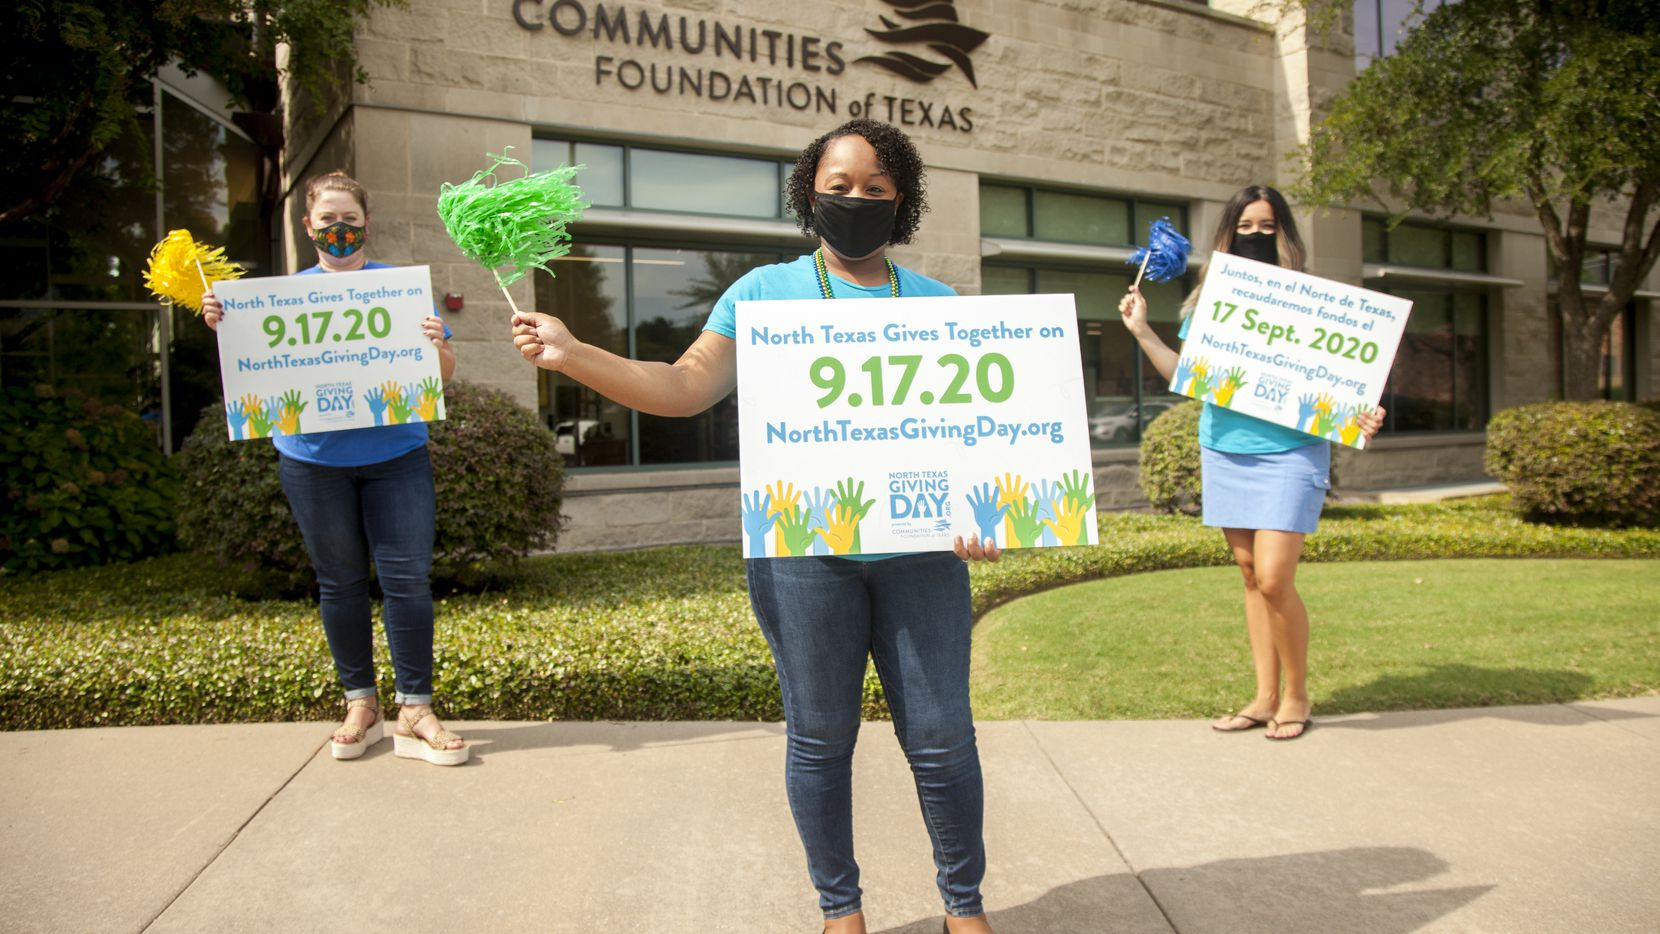 Communities Foundation of Texas' Lisa Causey (from left), Morgan Spann and Erica Lopez are revved up and ready for North Texas Giving Day. The event provides crucial funding and helps replenish pandemic-depleted resources for thousands of Dallas-Fort Worth nonprofits.